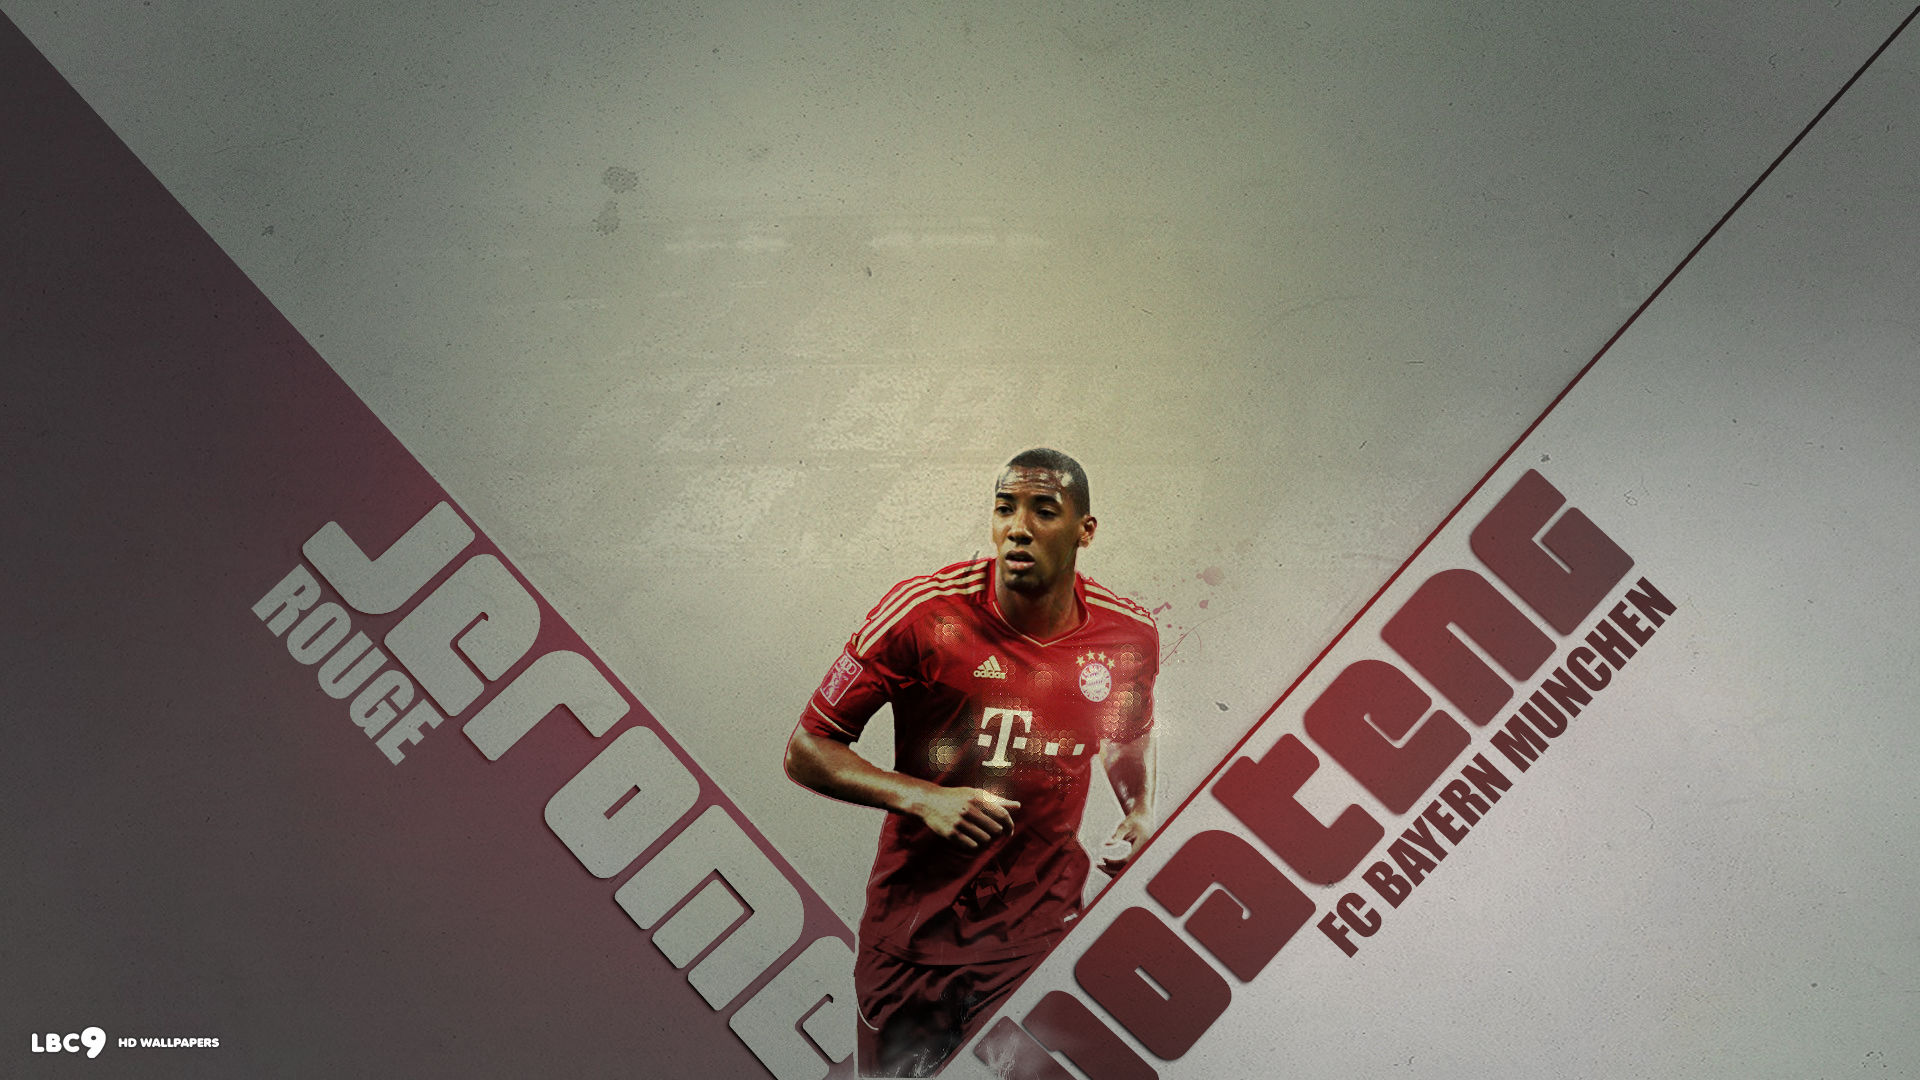 Jerome Boateng Football Wallpaper 1920x1080